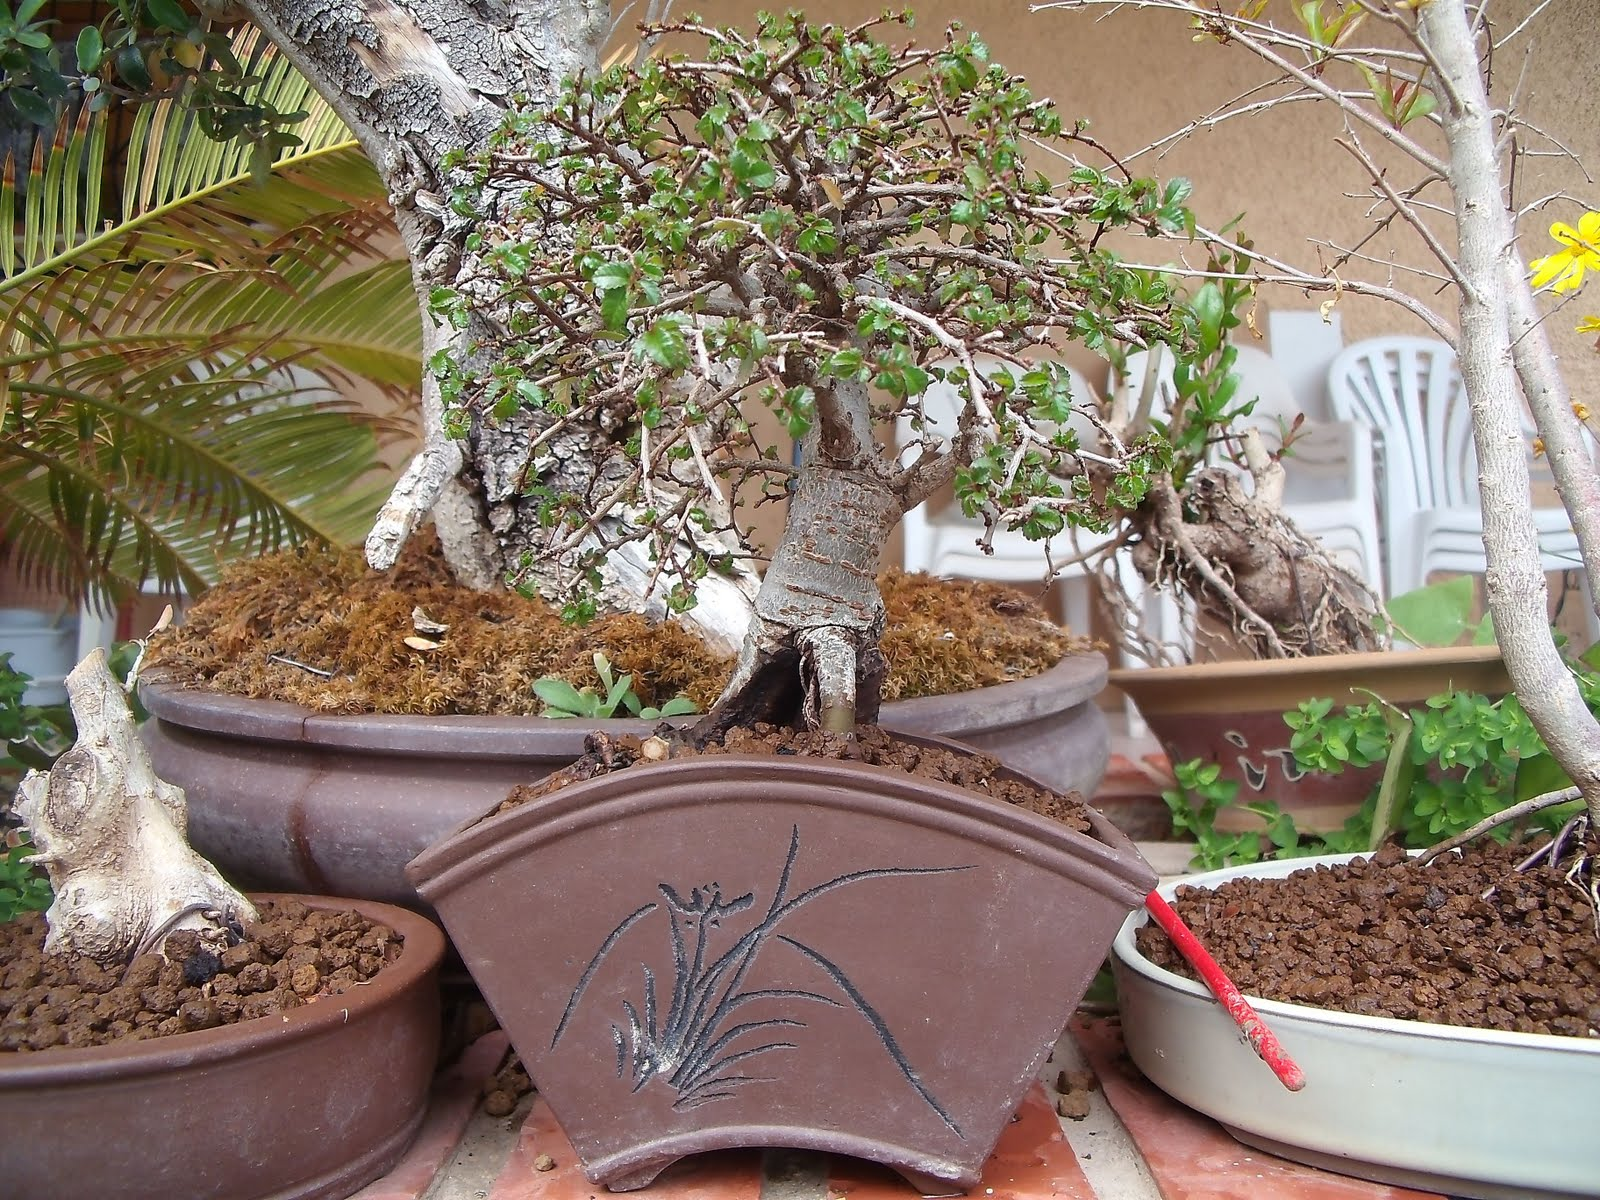 Jardin de los inmortales bonsai for Bonsai de jardin